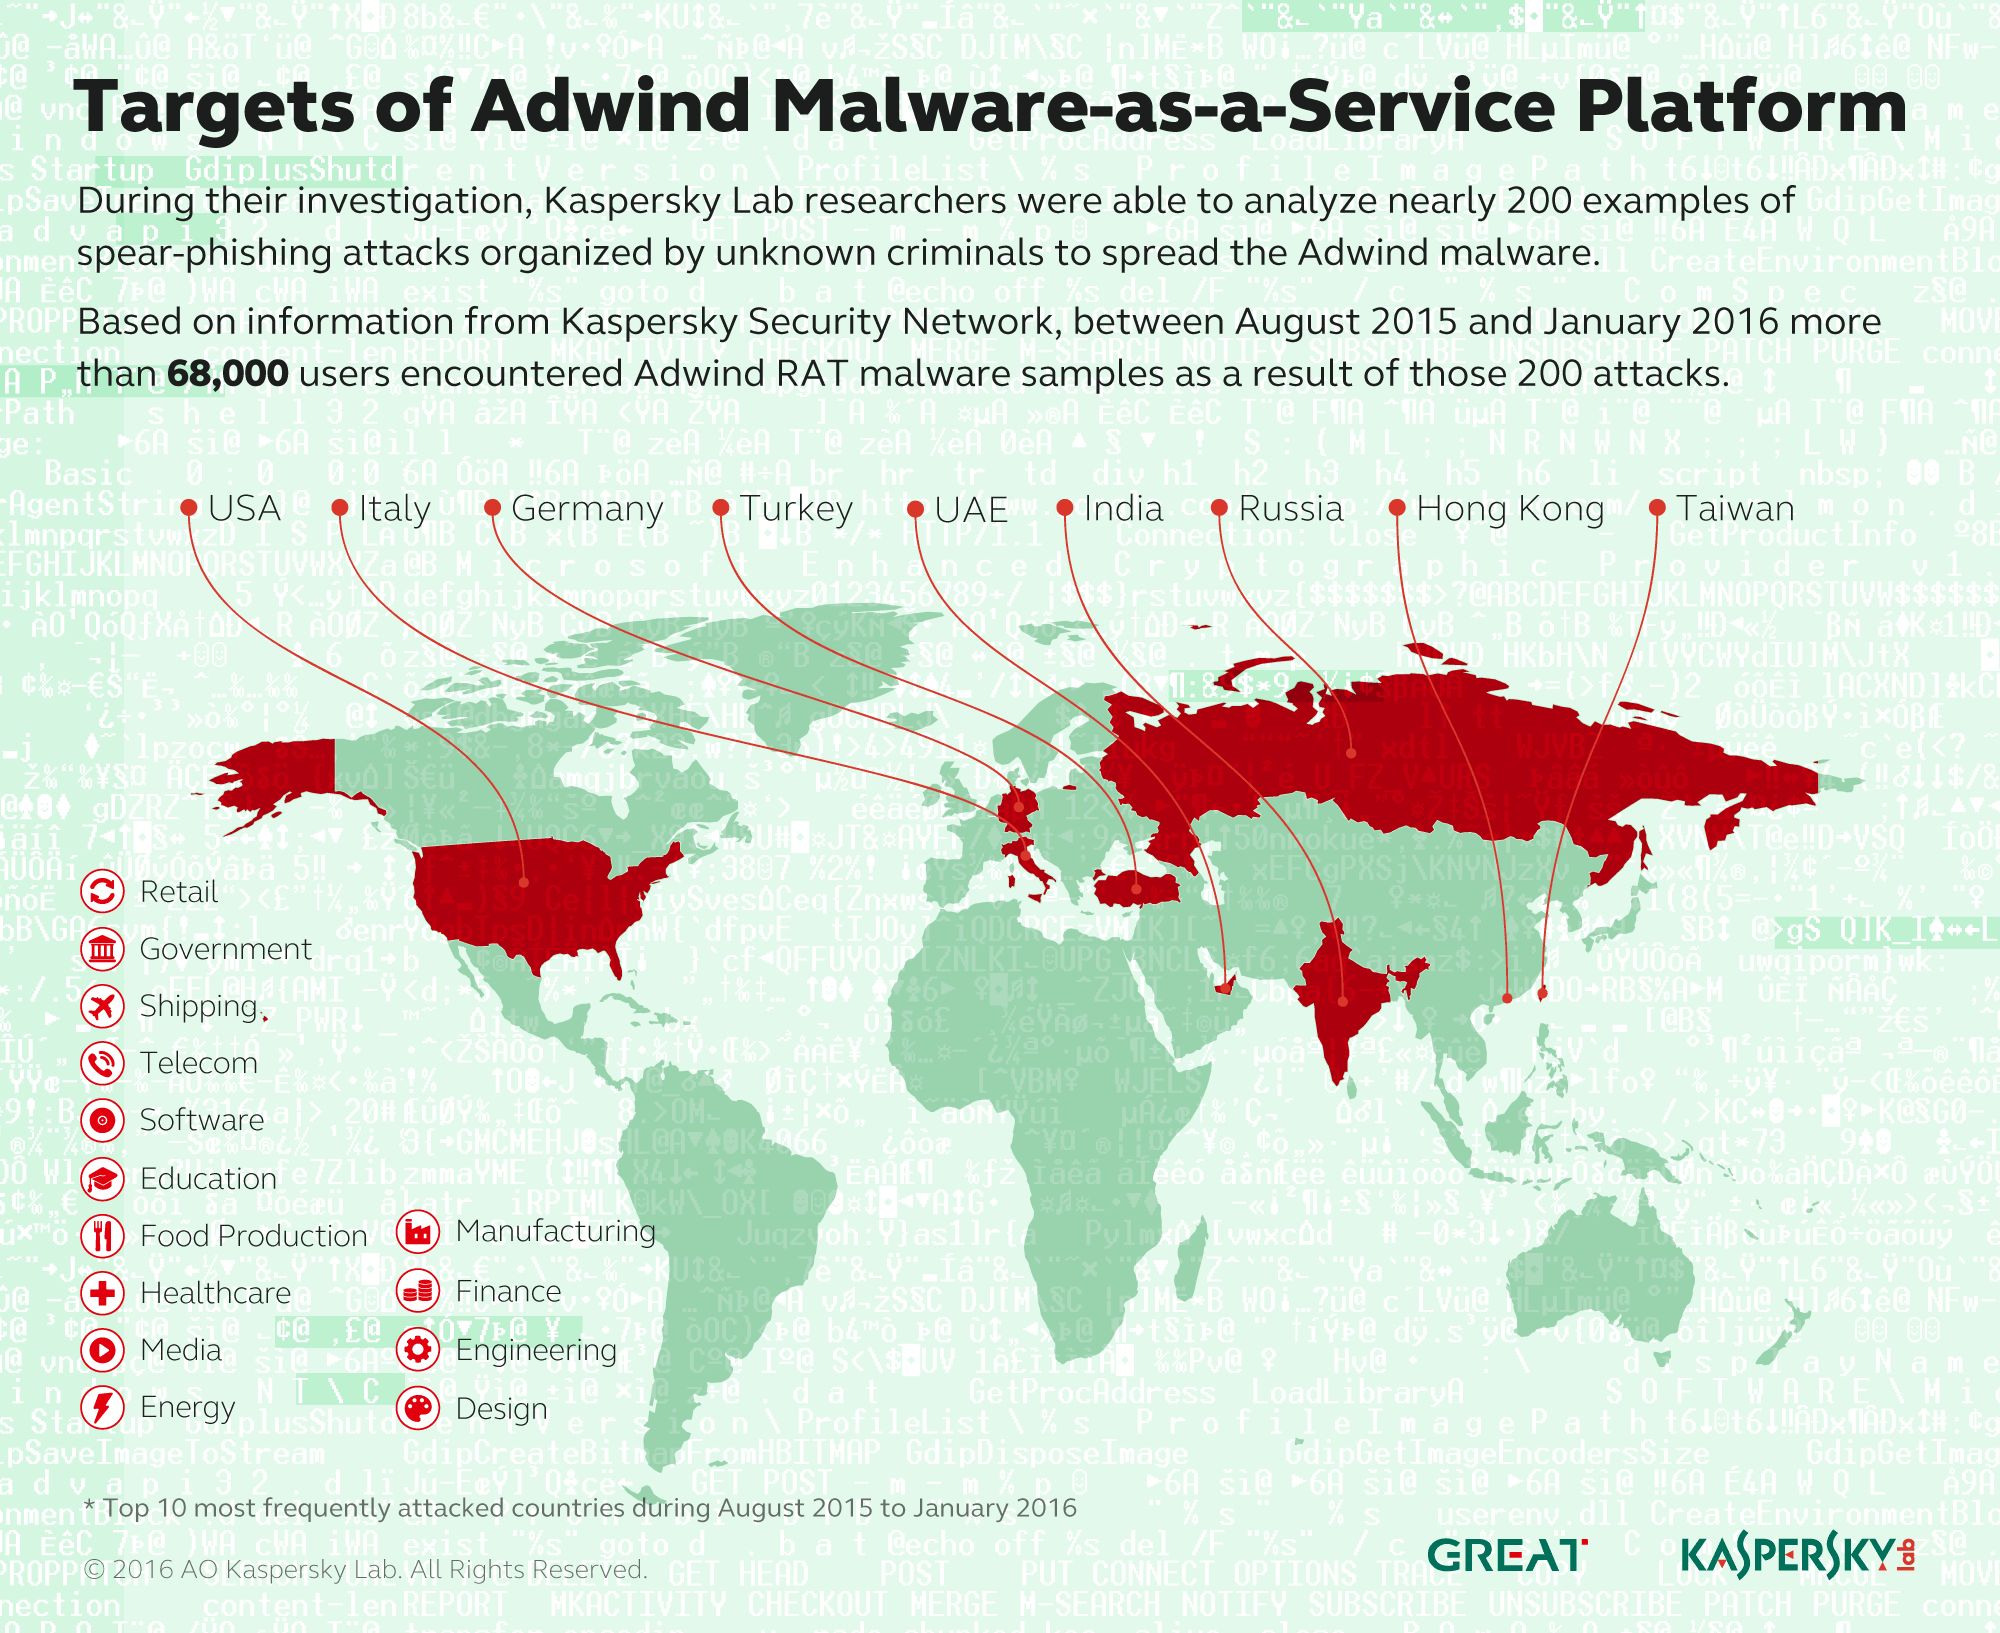 Adwind malware-as-a-service hits more than 400,000 users globally